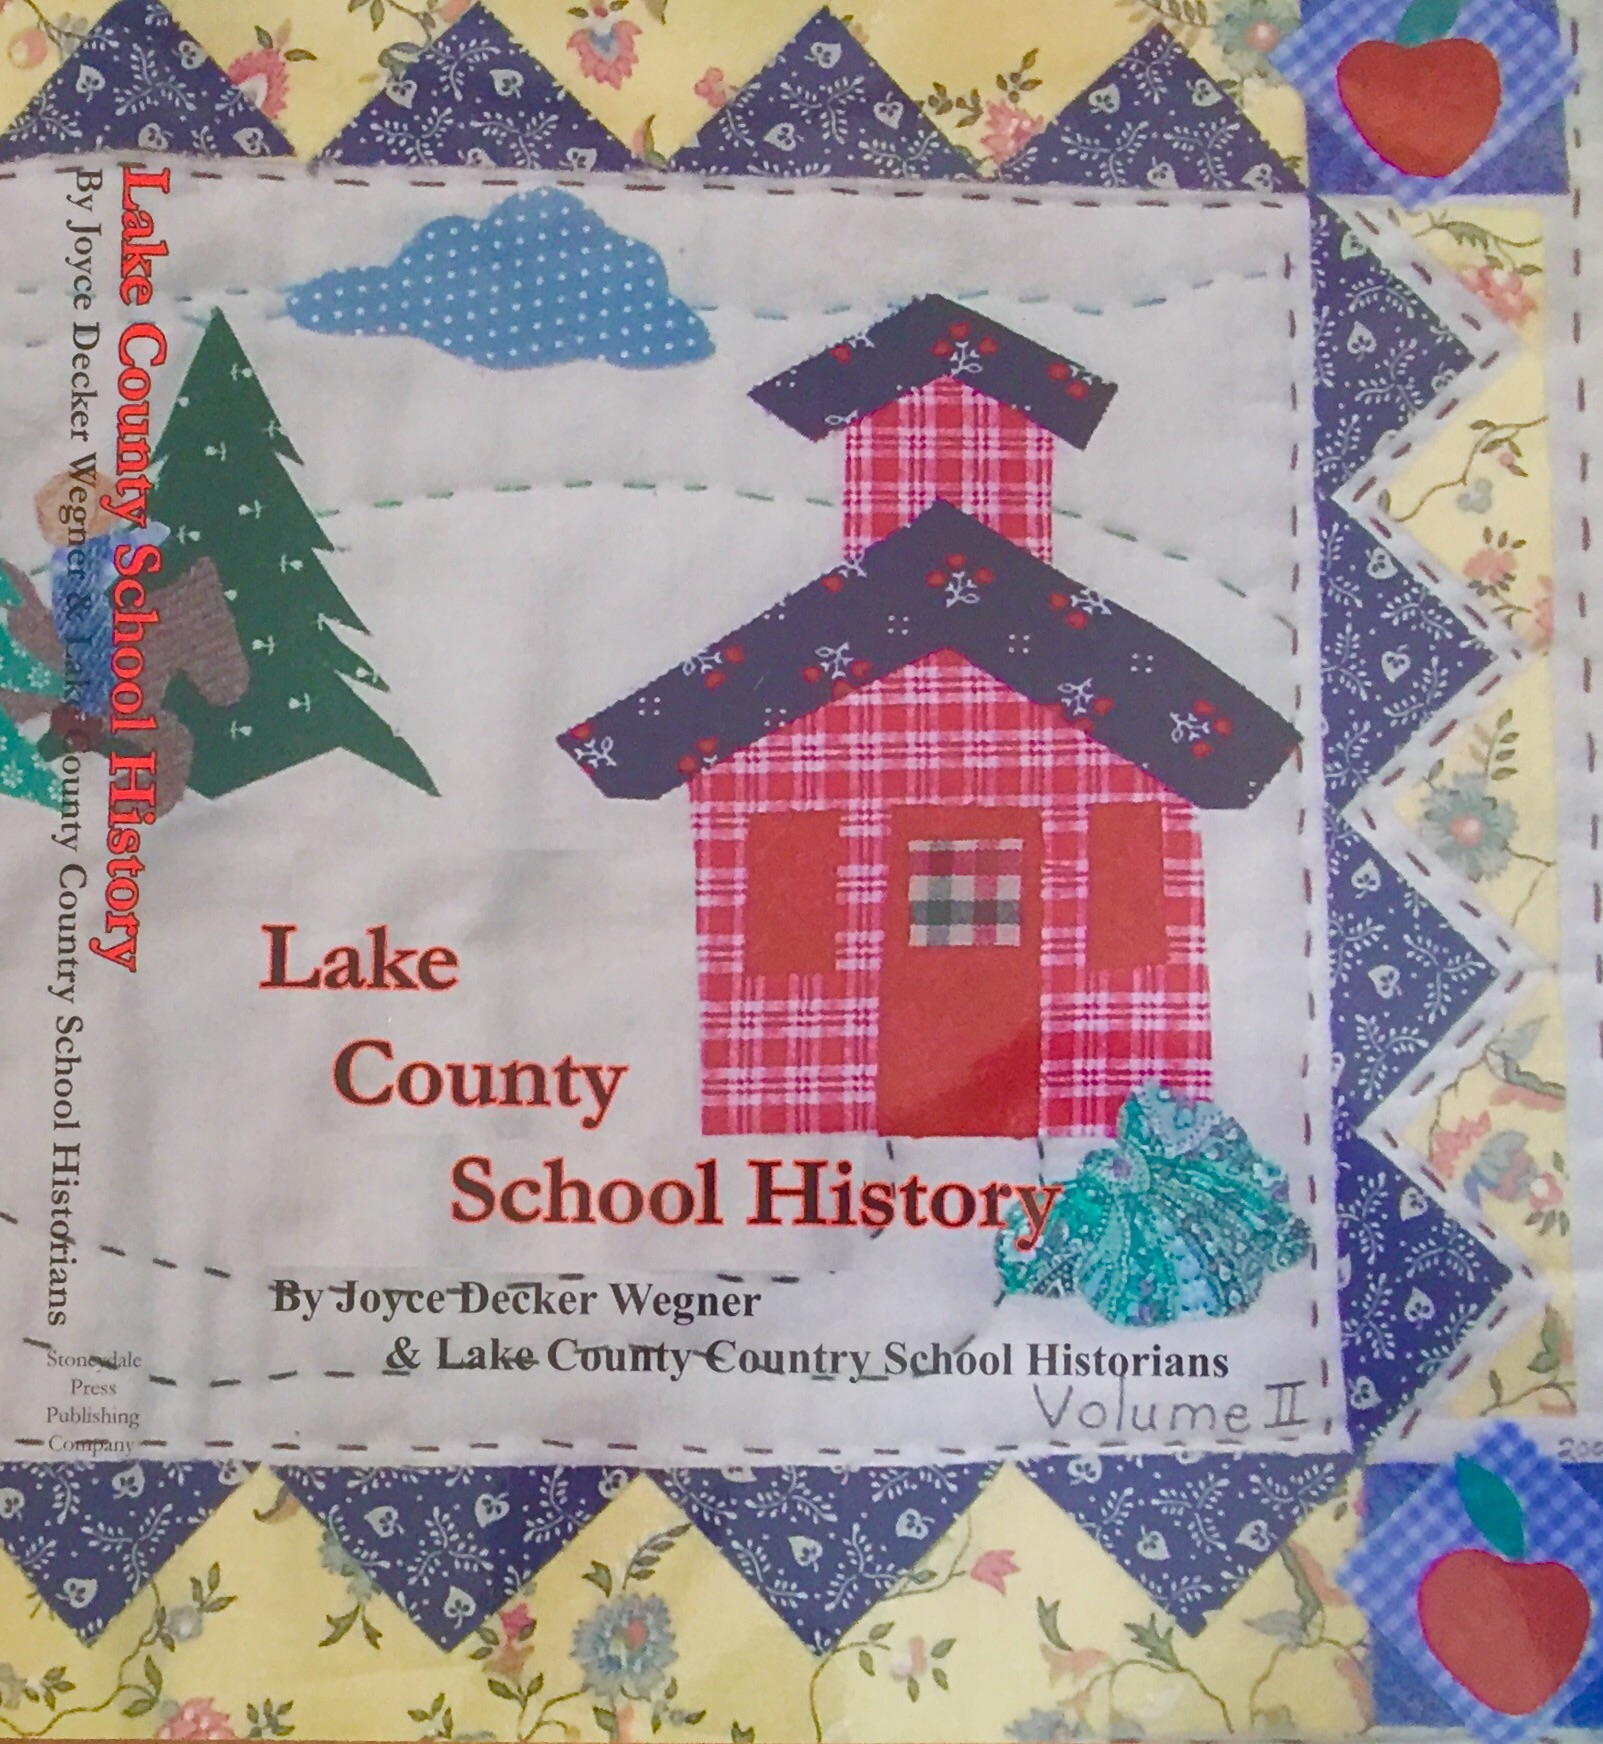 Lake County School History, Volume II